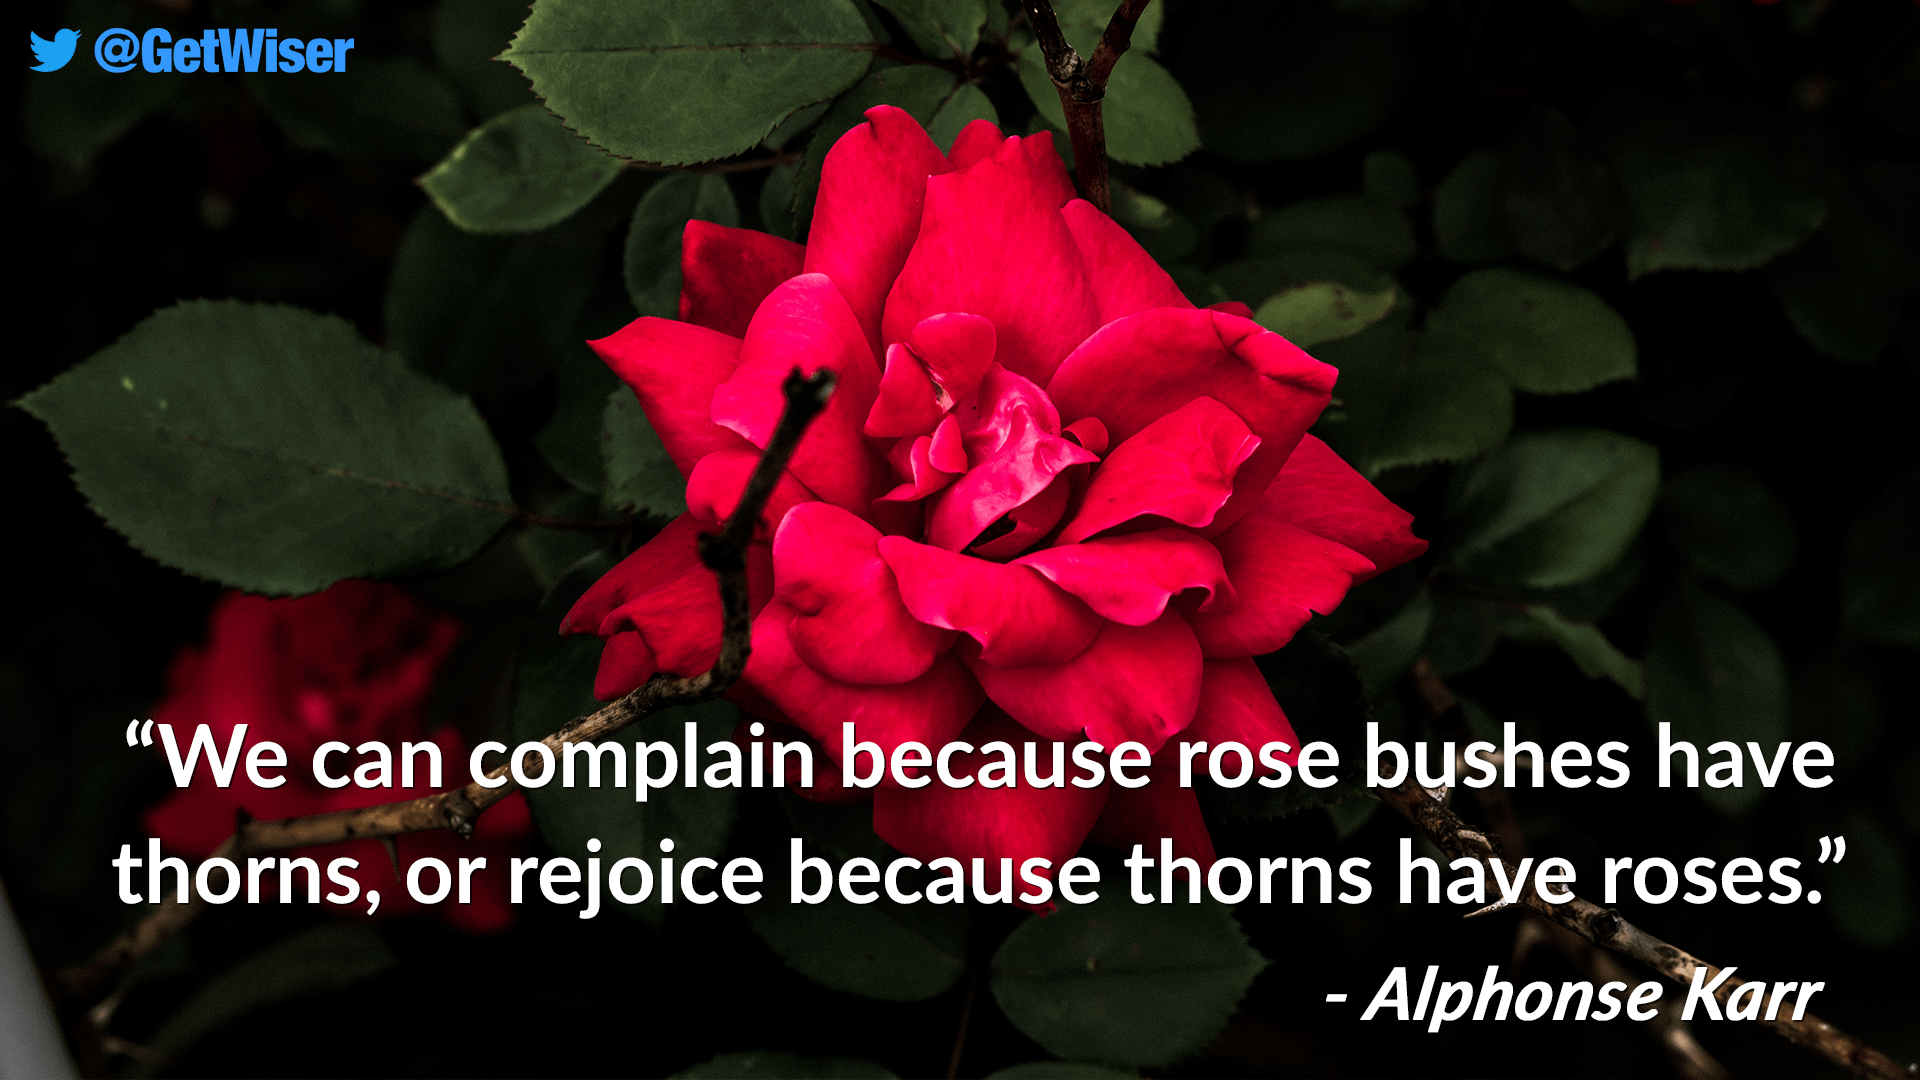 """We can complain because rose bushes have thorns, or rejoice because thorns have roses."" – Alphonse Karr [1920×1080]"